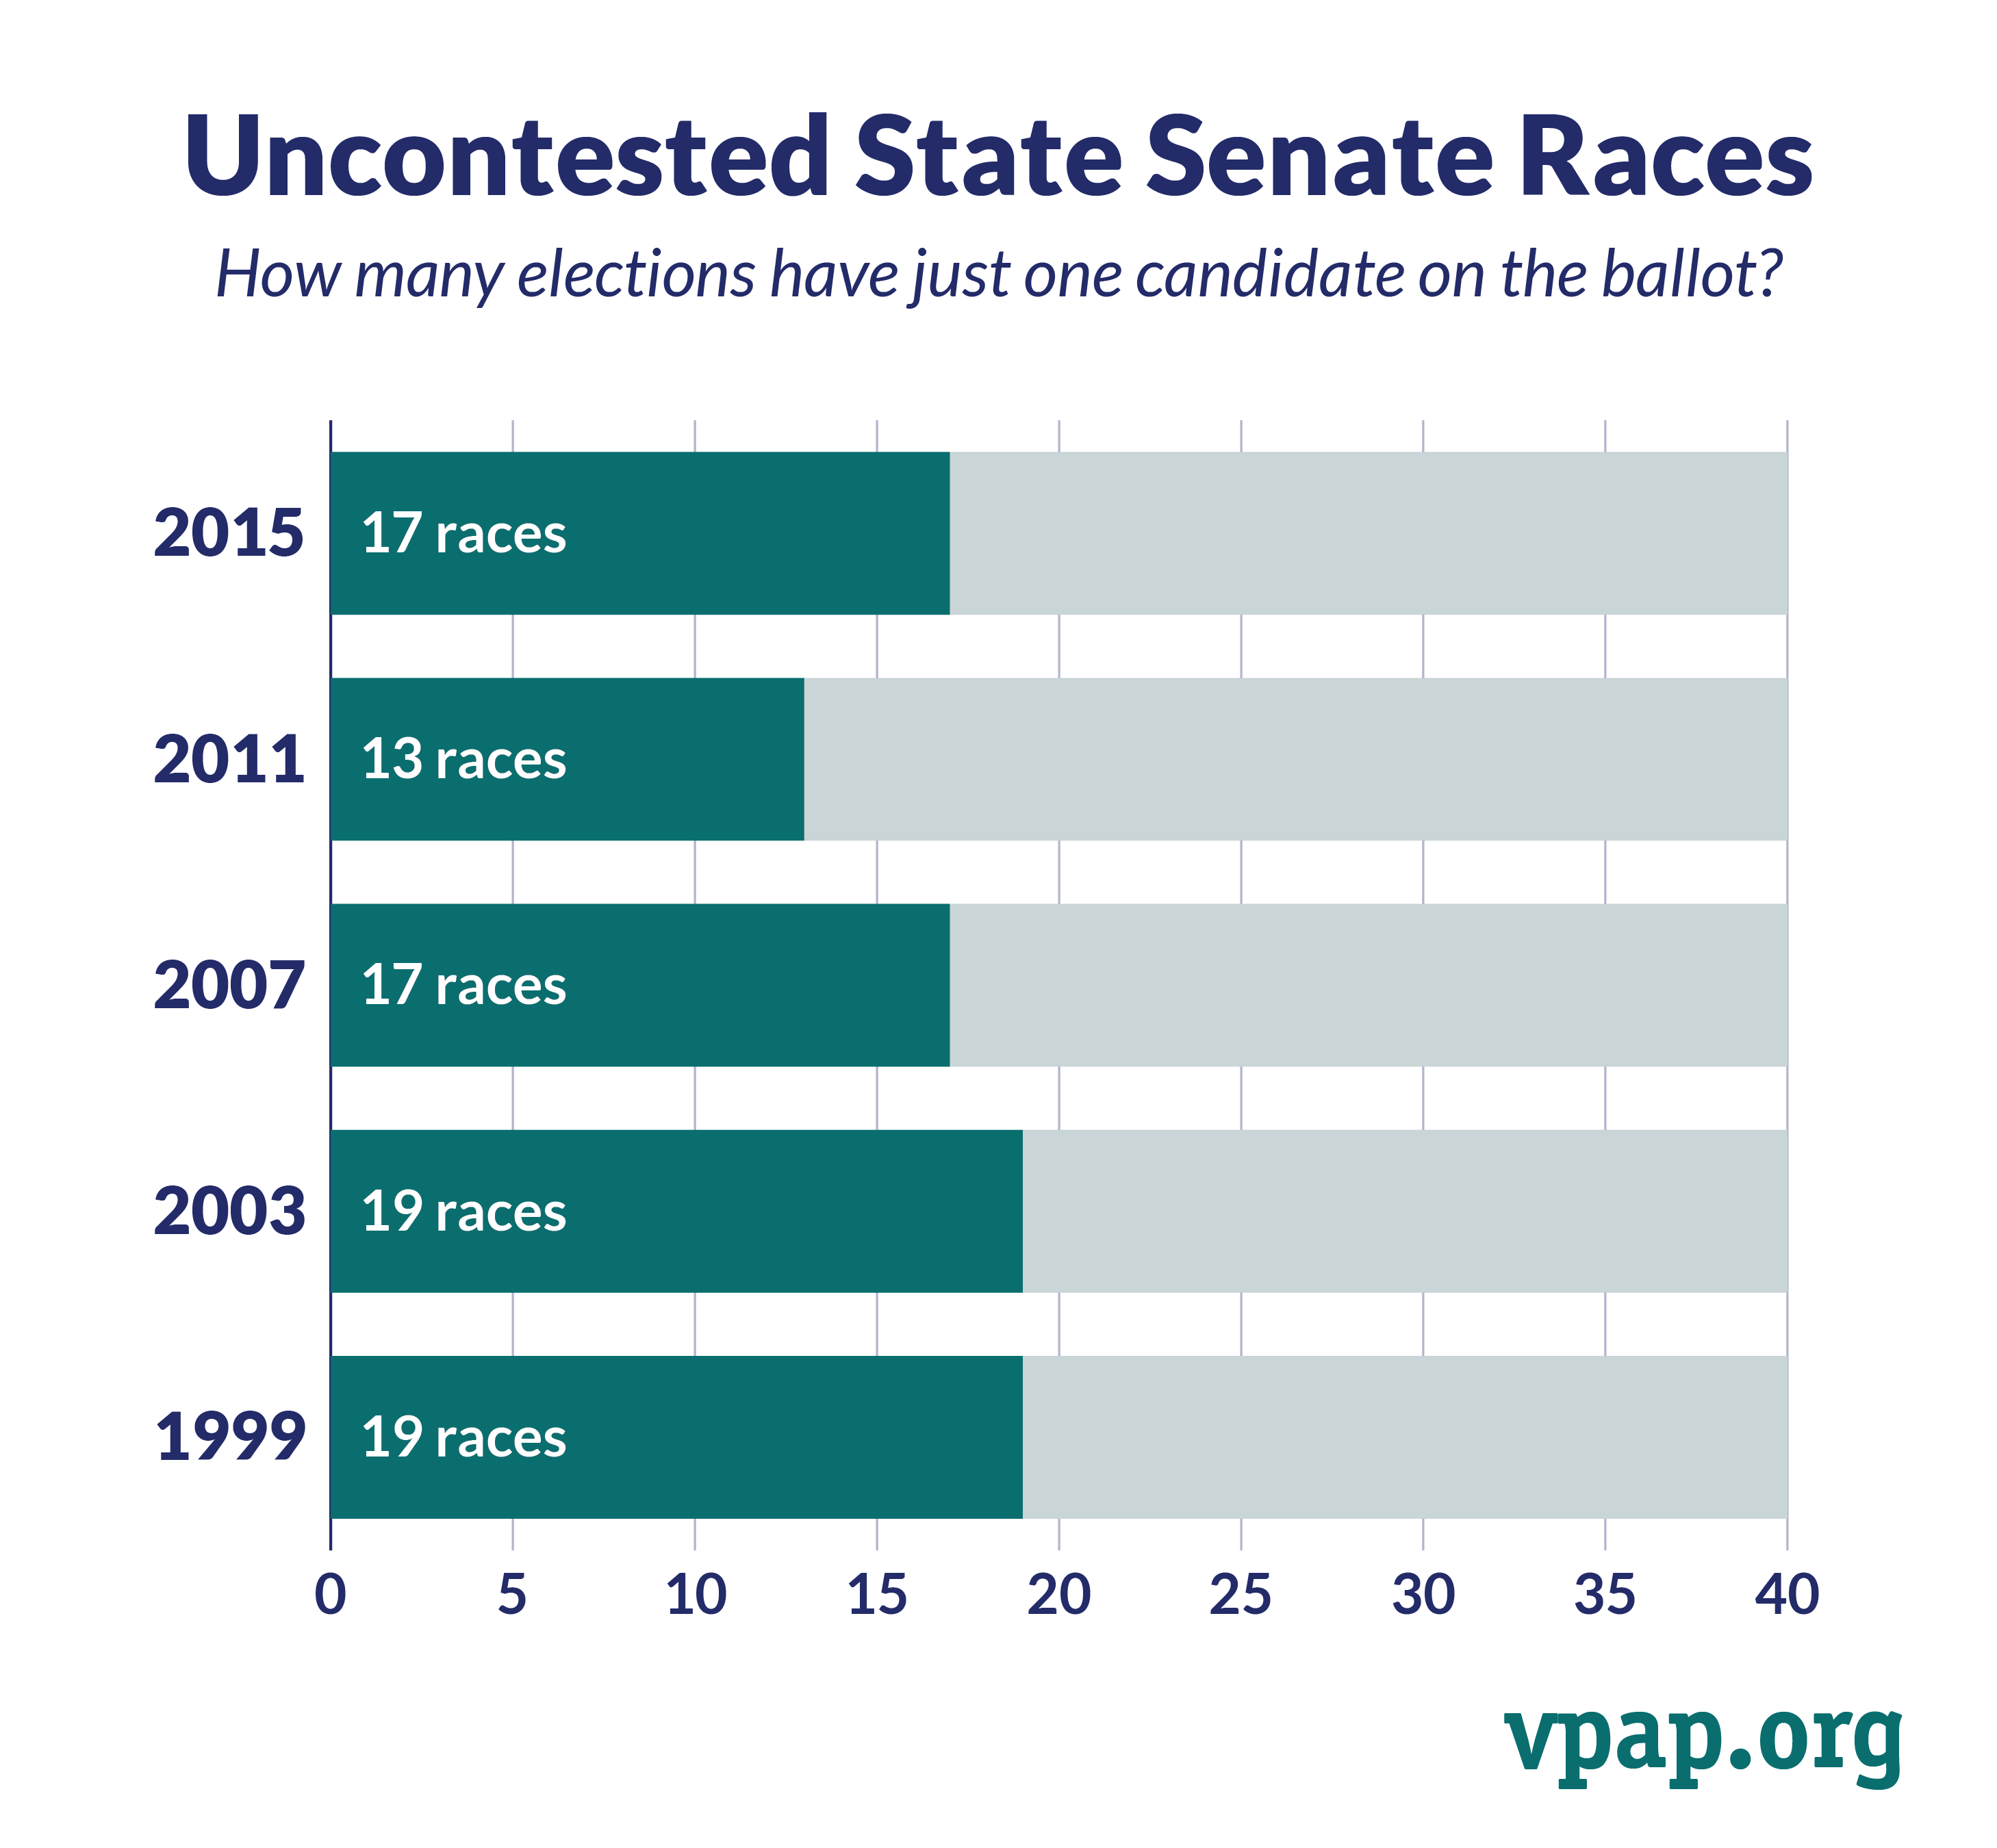 Uncontested State Senate Races